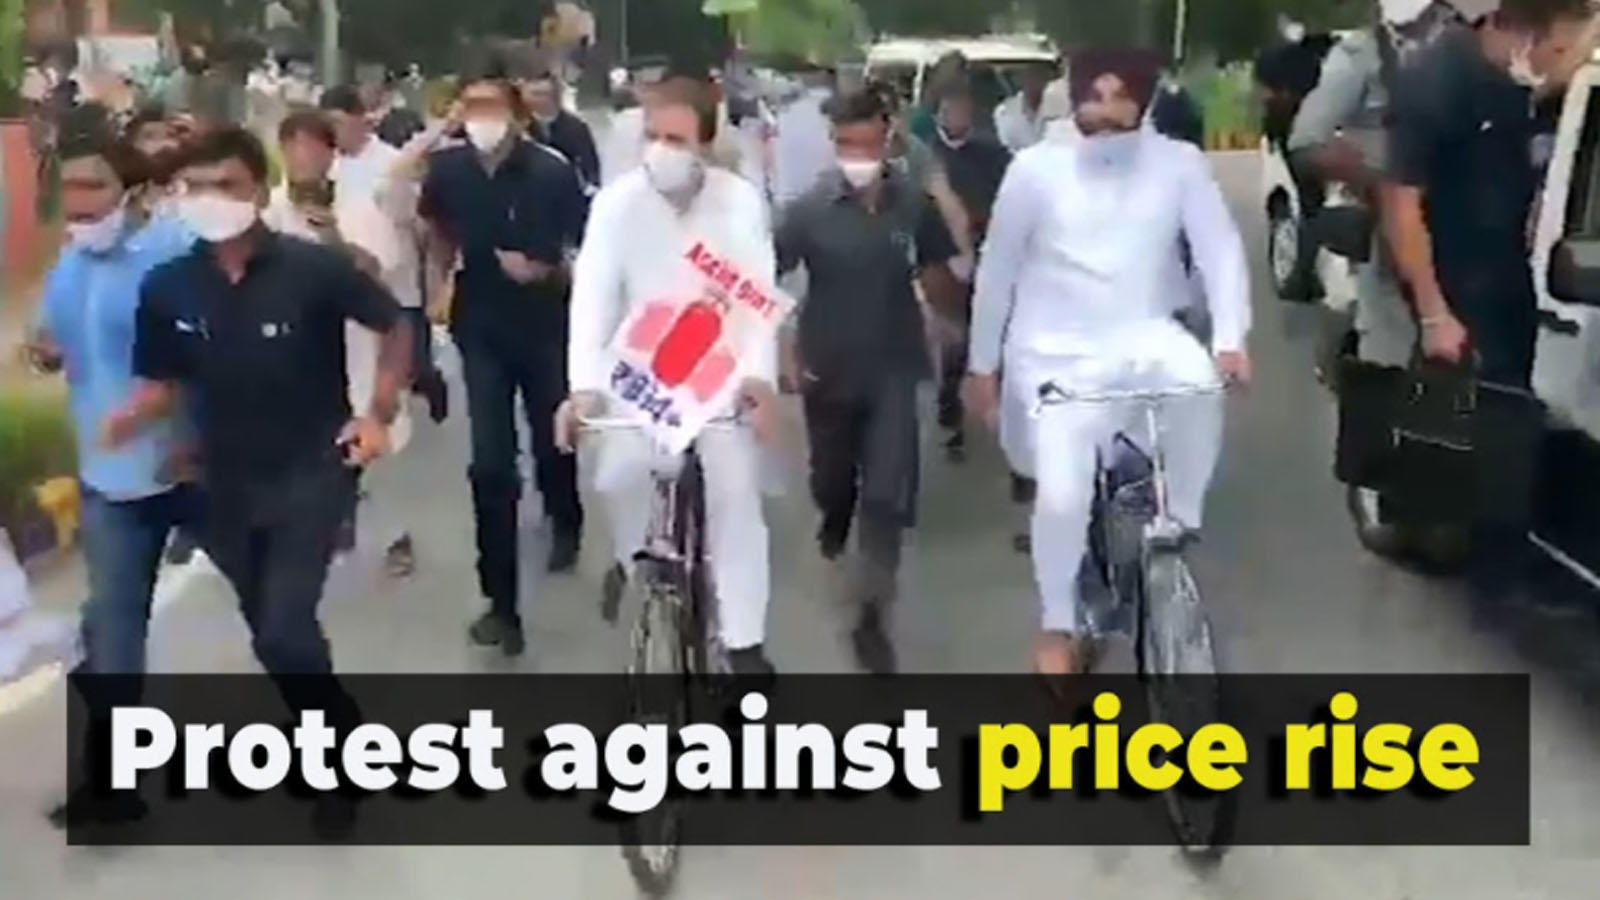 rahul-gandhi-and-opposition-leaders-ride-bicycles-to-protest-rising-fuel-prices